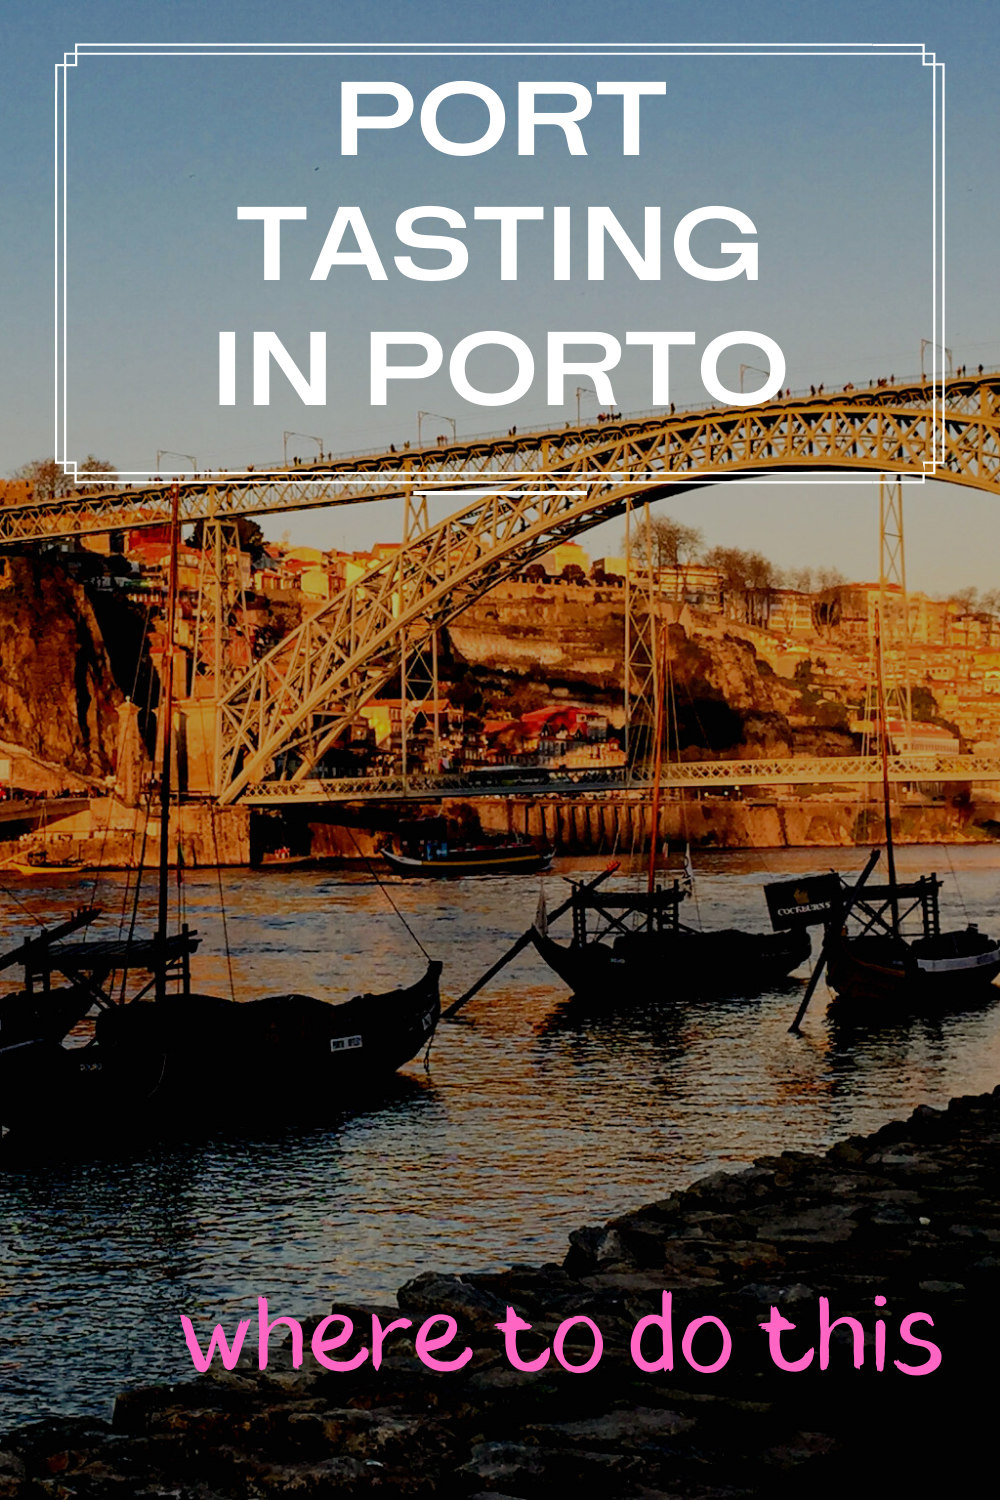 Where to try port in porto and top tips for port tasting in Porto. If you're in Porto, you must try some port, the trade synonymous with the city. There are many ways you can do some port tasting/ port wine tasting in Porto. Read my post for top tips on how to do some Porto port tasting on a visit to Porto. Portugal travel. #porto #port #porttasting #citybreak #portugal #travel #portugaltravel #portwine #winetasting